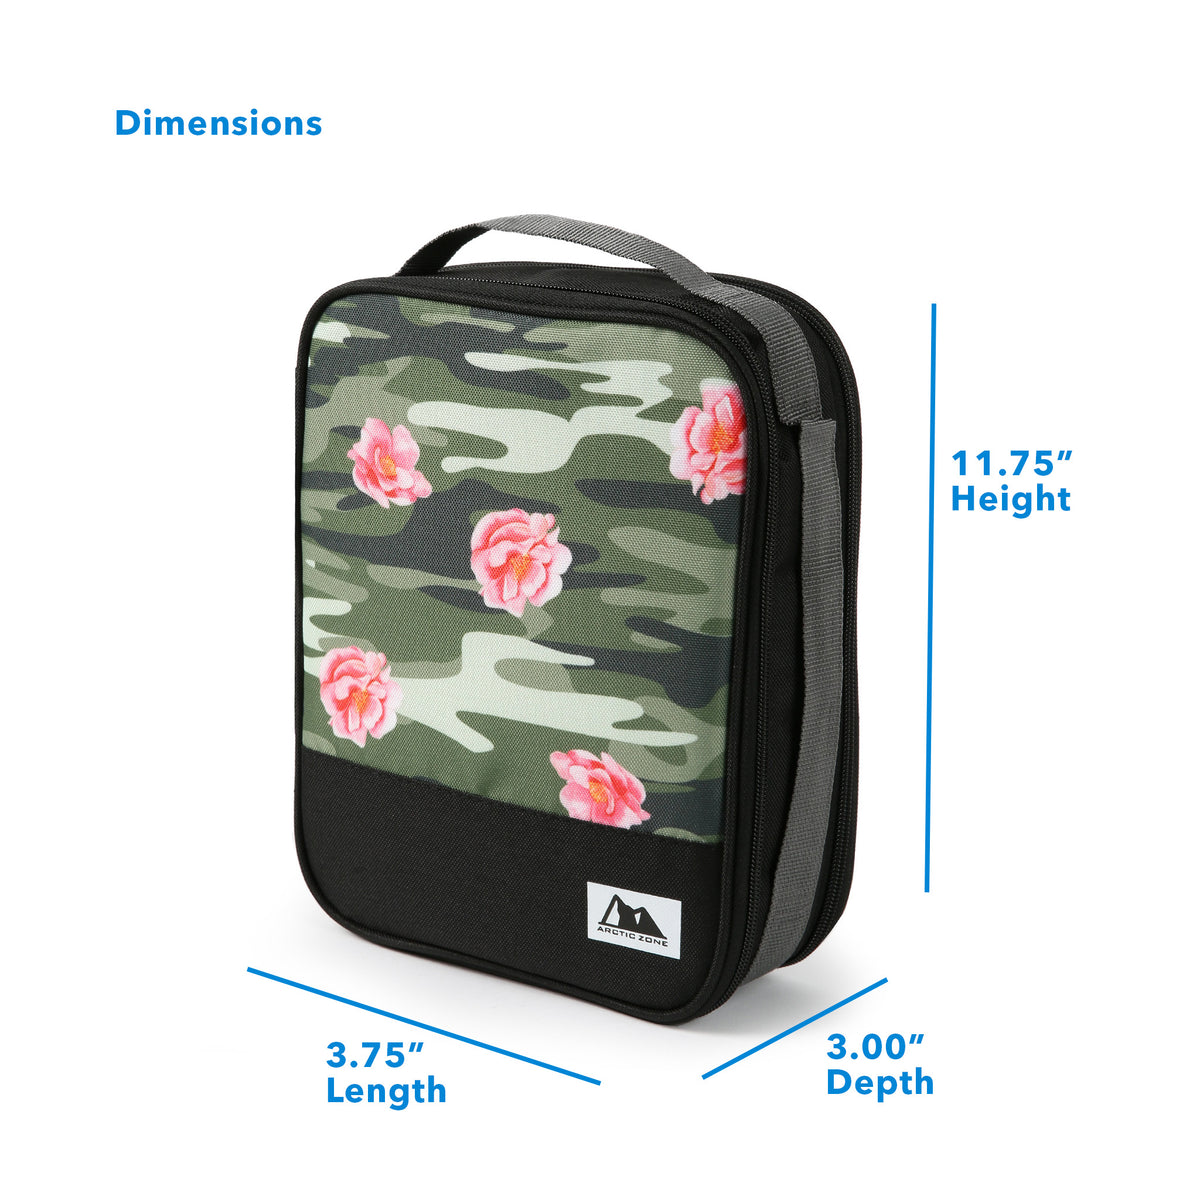 "Arctic Zone® Expandable Urban Lunch Pack - Rose Camo - Dimensions (L x D x H) 3.75"" x 3.00"" x 11.75"""